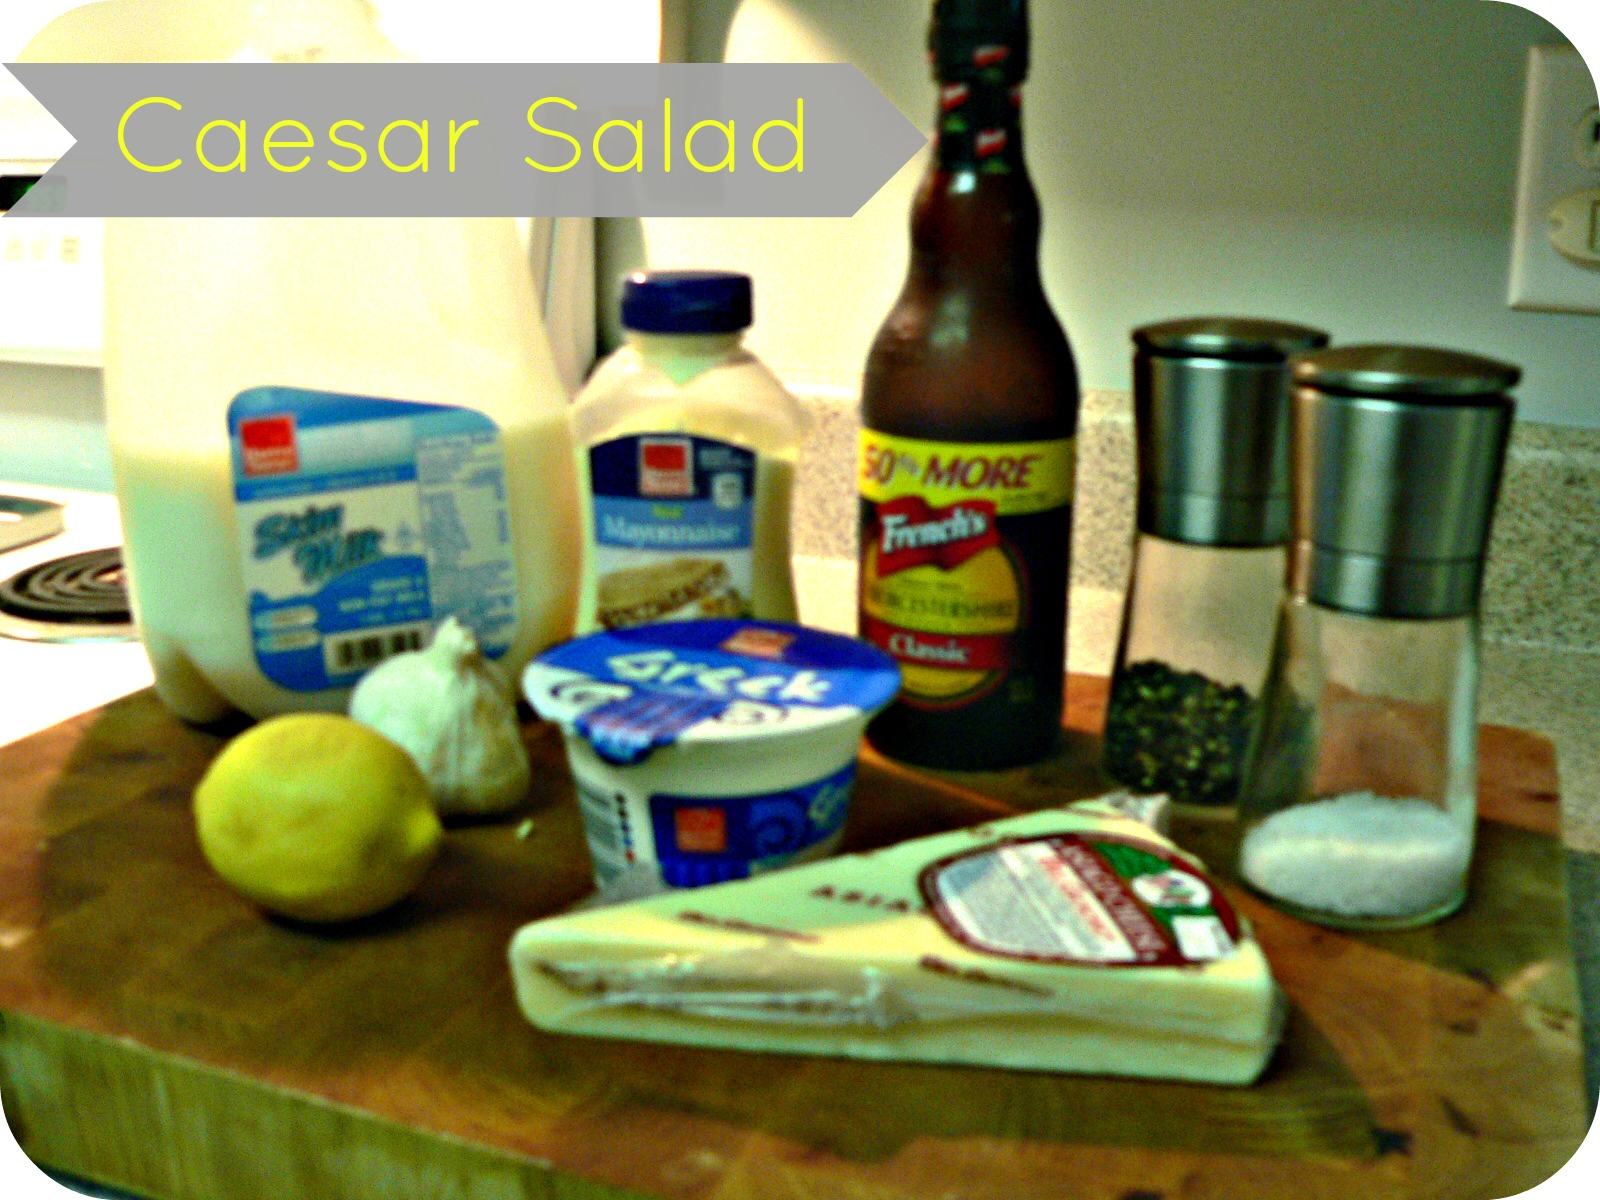 caesarsaladingredients Must Make, Low Fat Caesar Salad